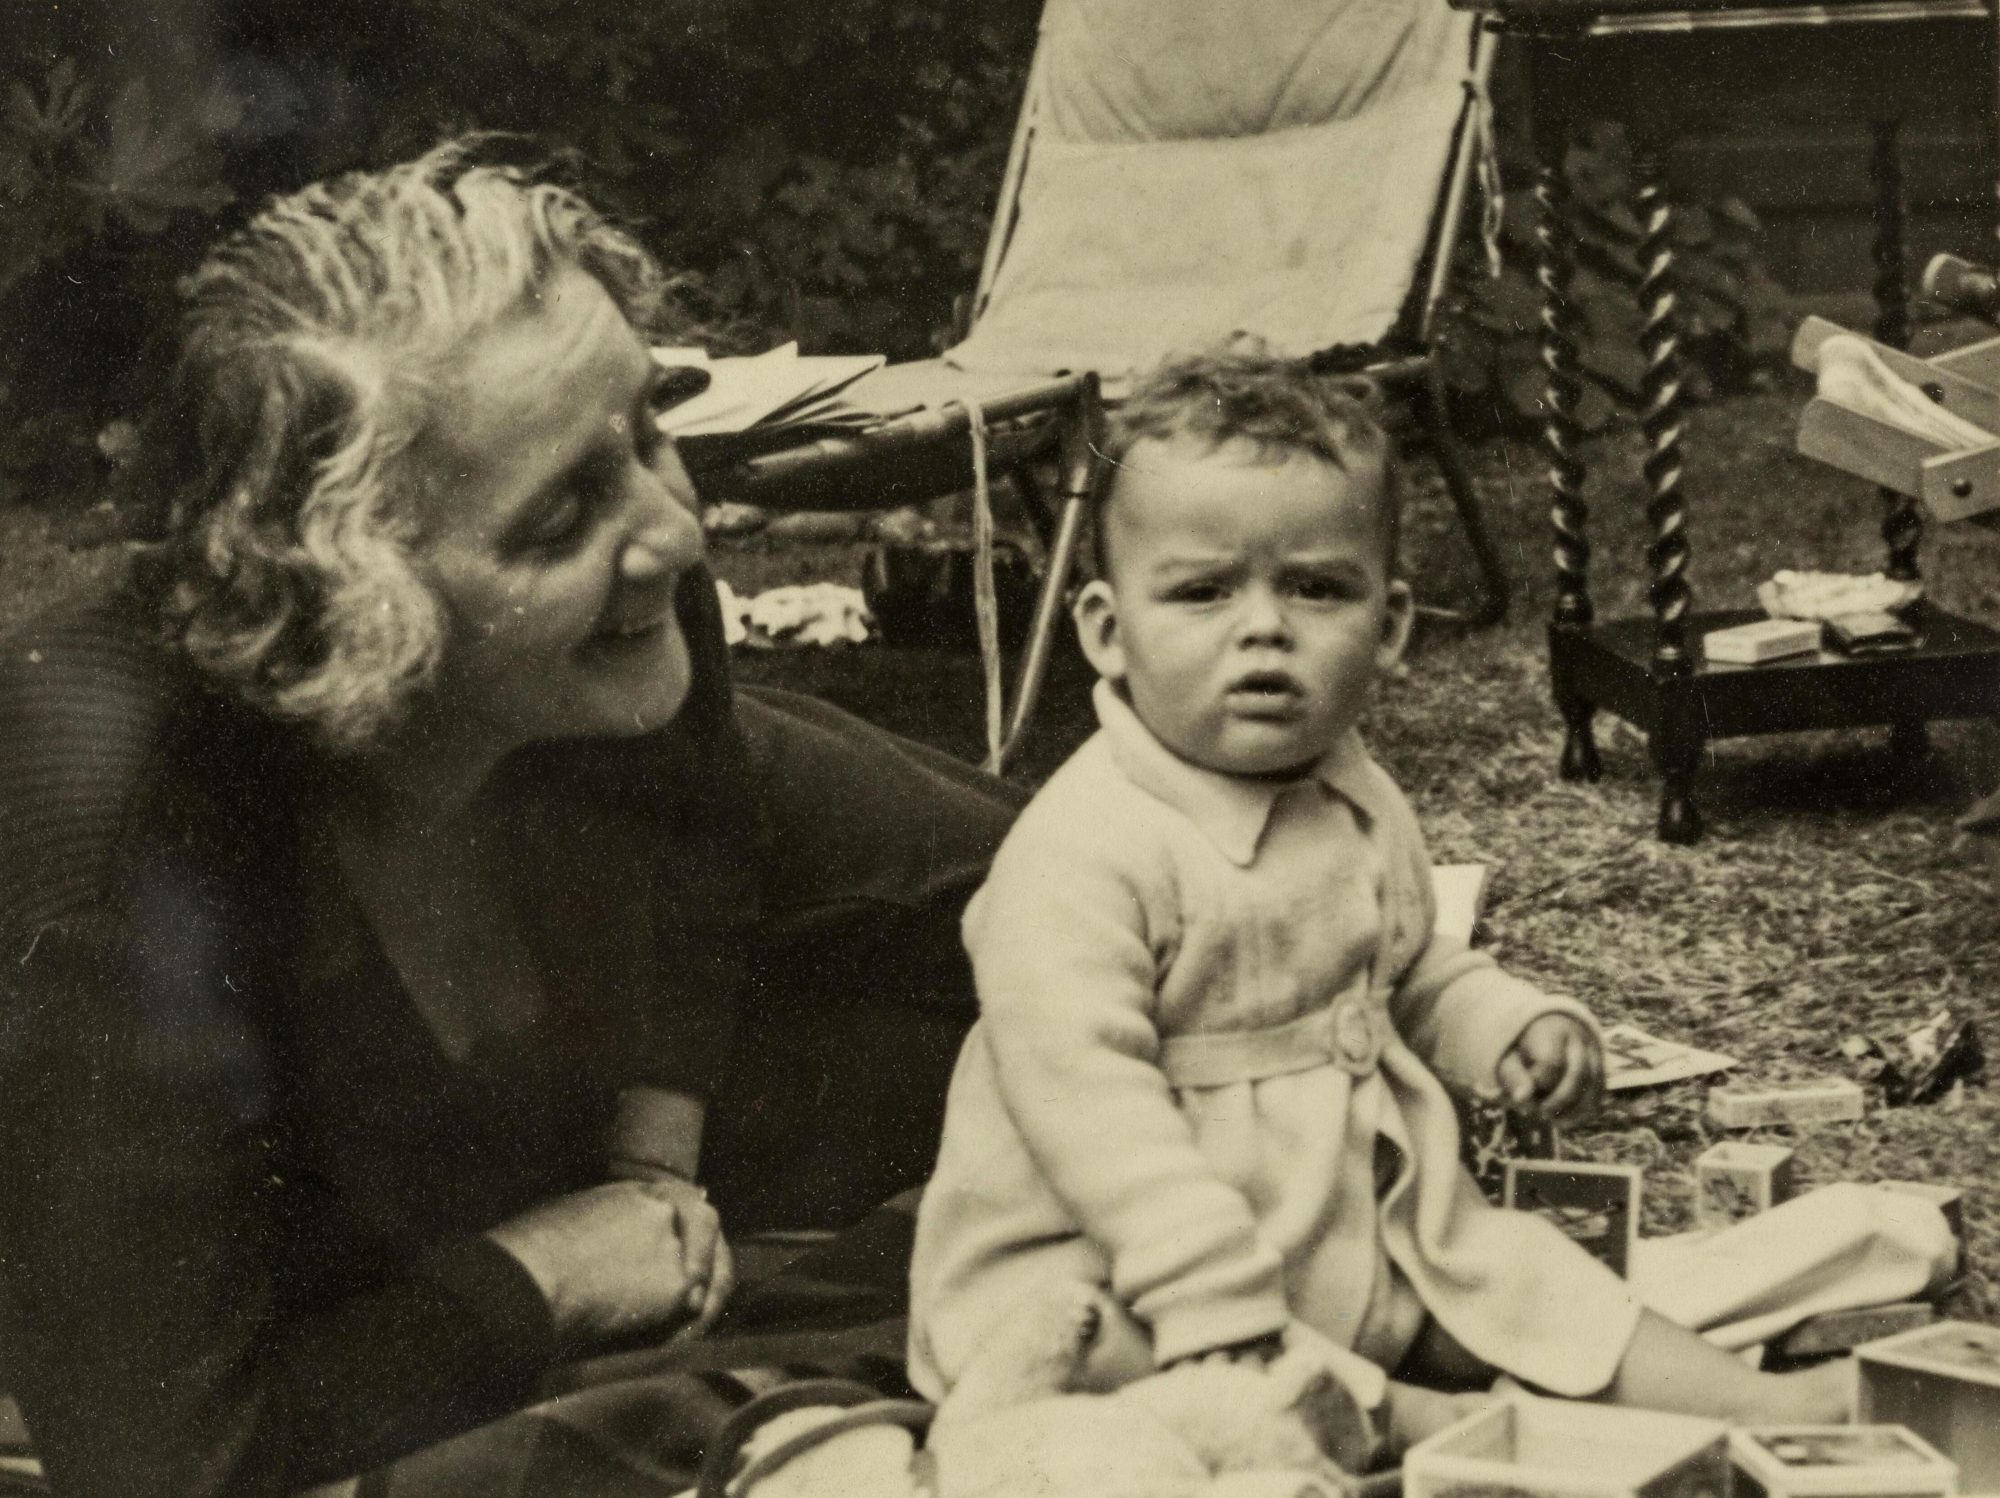 Photograph of Melanie Klein with her grandson Michael in 1938.